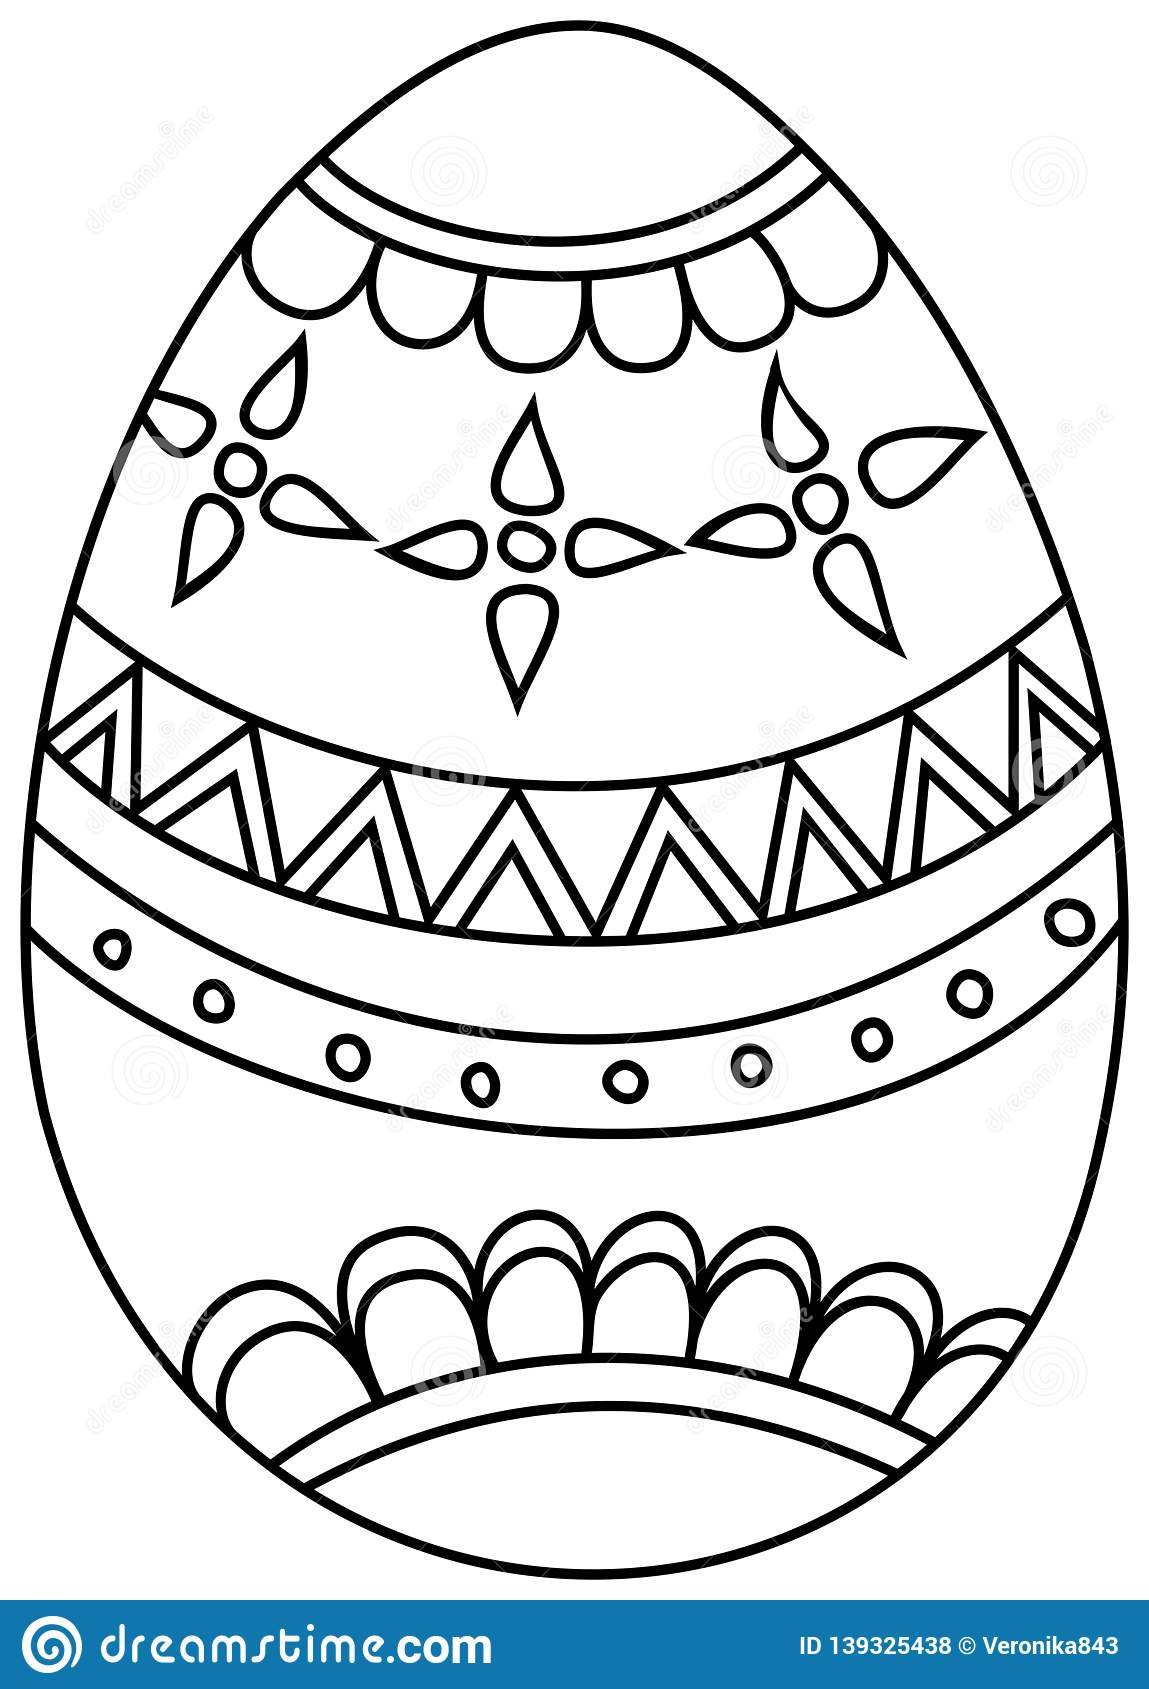 Easter Egg. Coloring Book For Kids. Hand Drawn Icon Stock ...